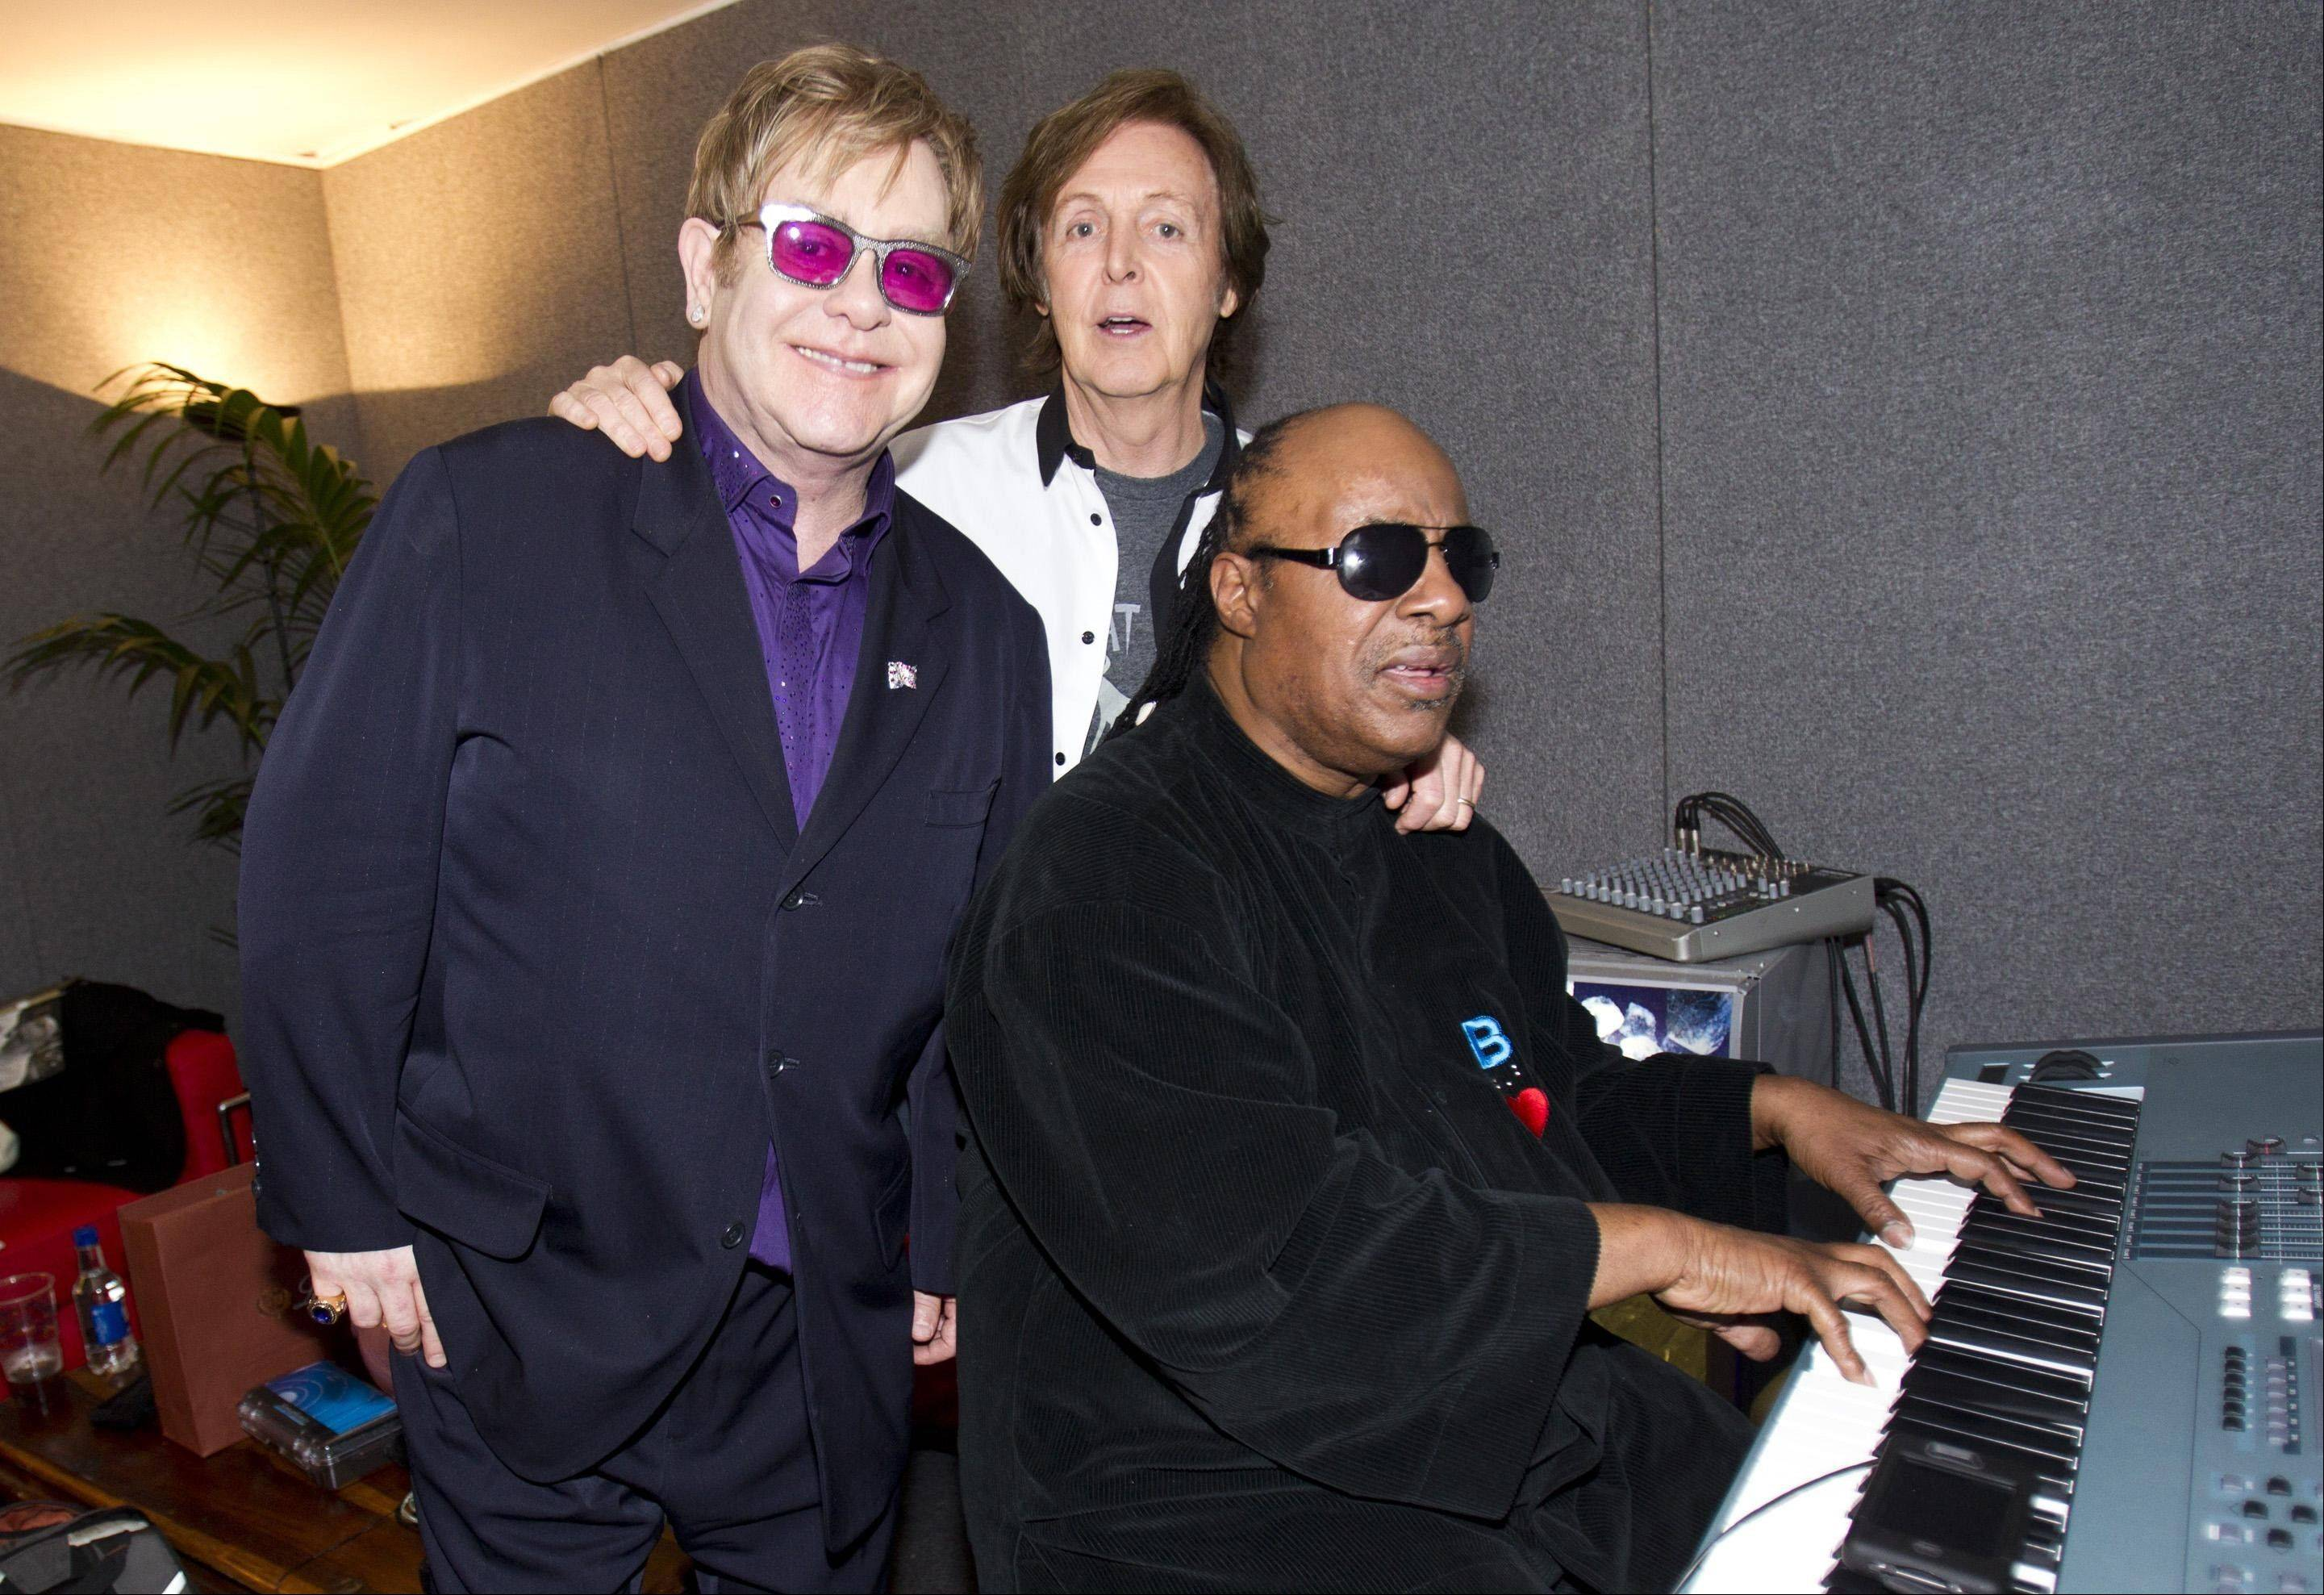 In this photo released by MPL Communications , Sir Paul McCartney with Sir Elton John and Stevie Wonder backstage the Diamond Jubilee concert at Buckingham Palace, in London Monday June 4, 2012.